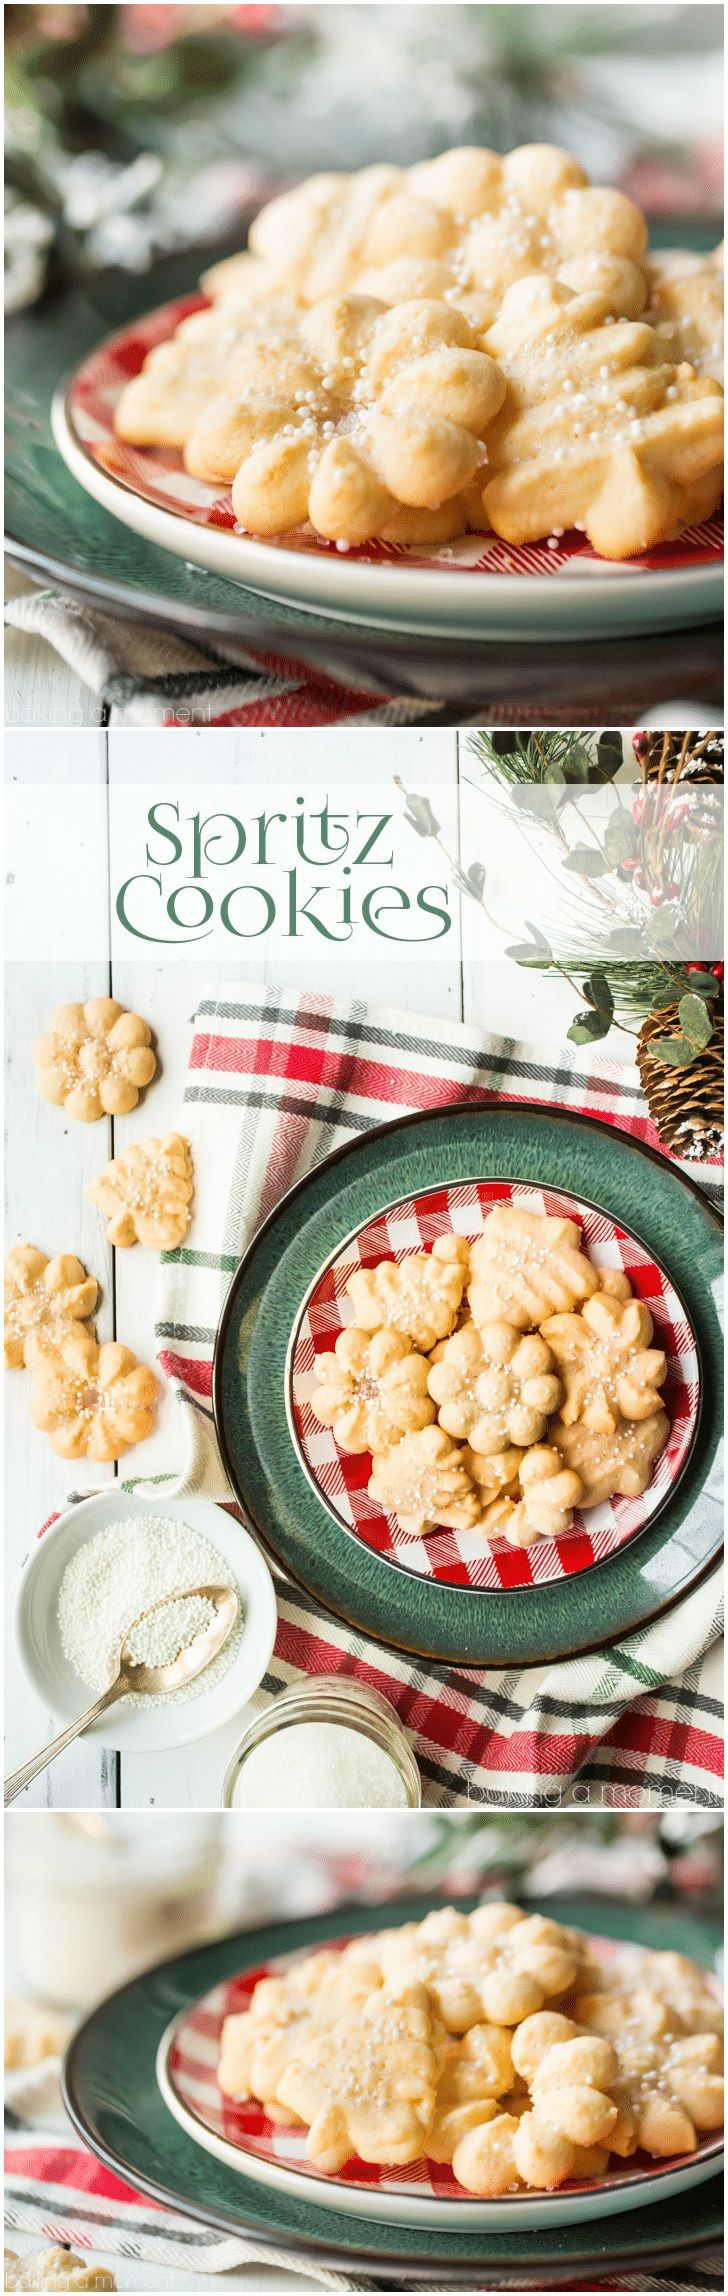 An assortment of buttery spritz cookies, on a red and green plate with holiday greenery in the background.